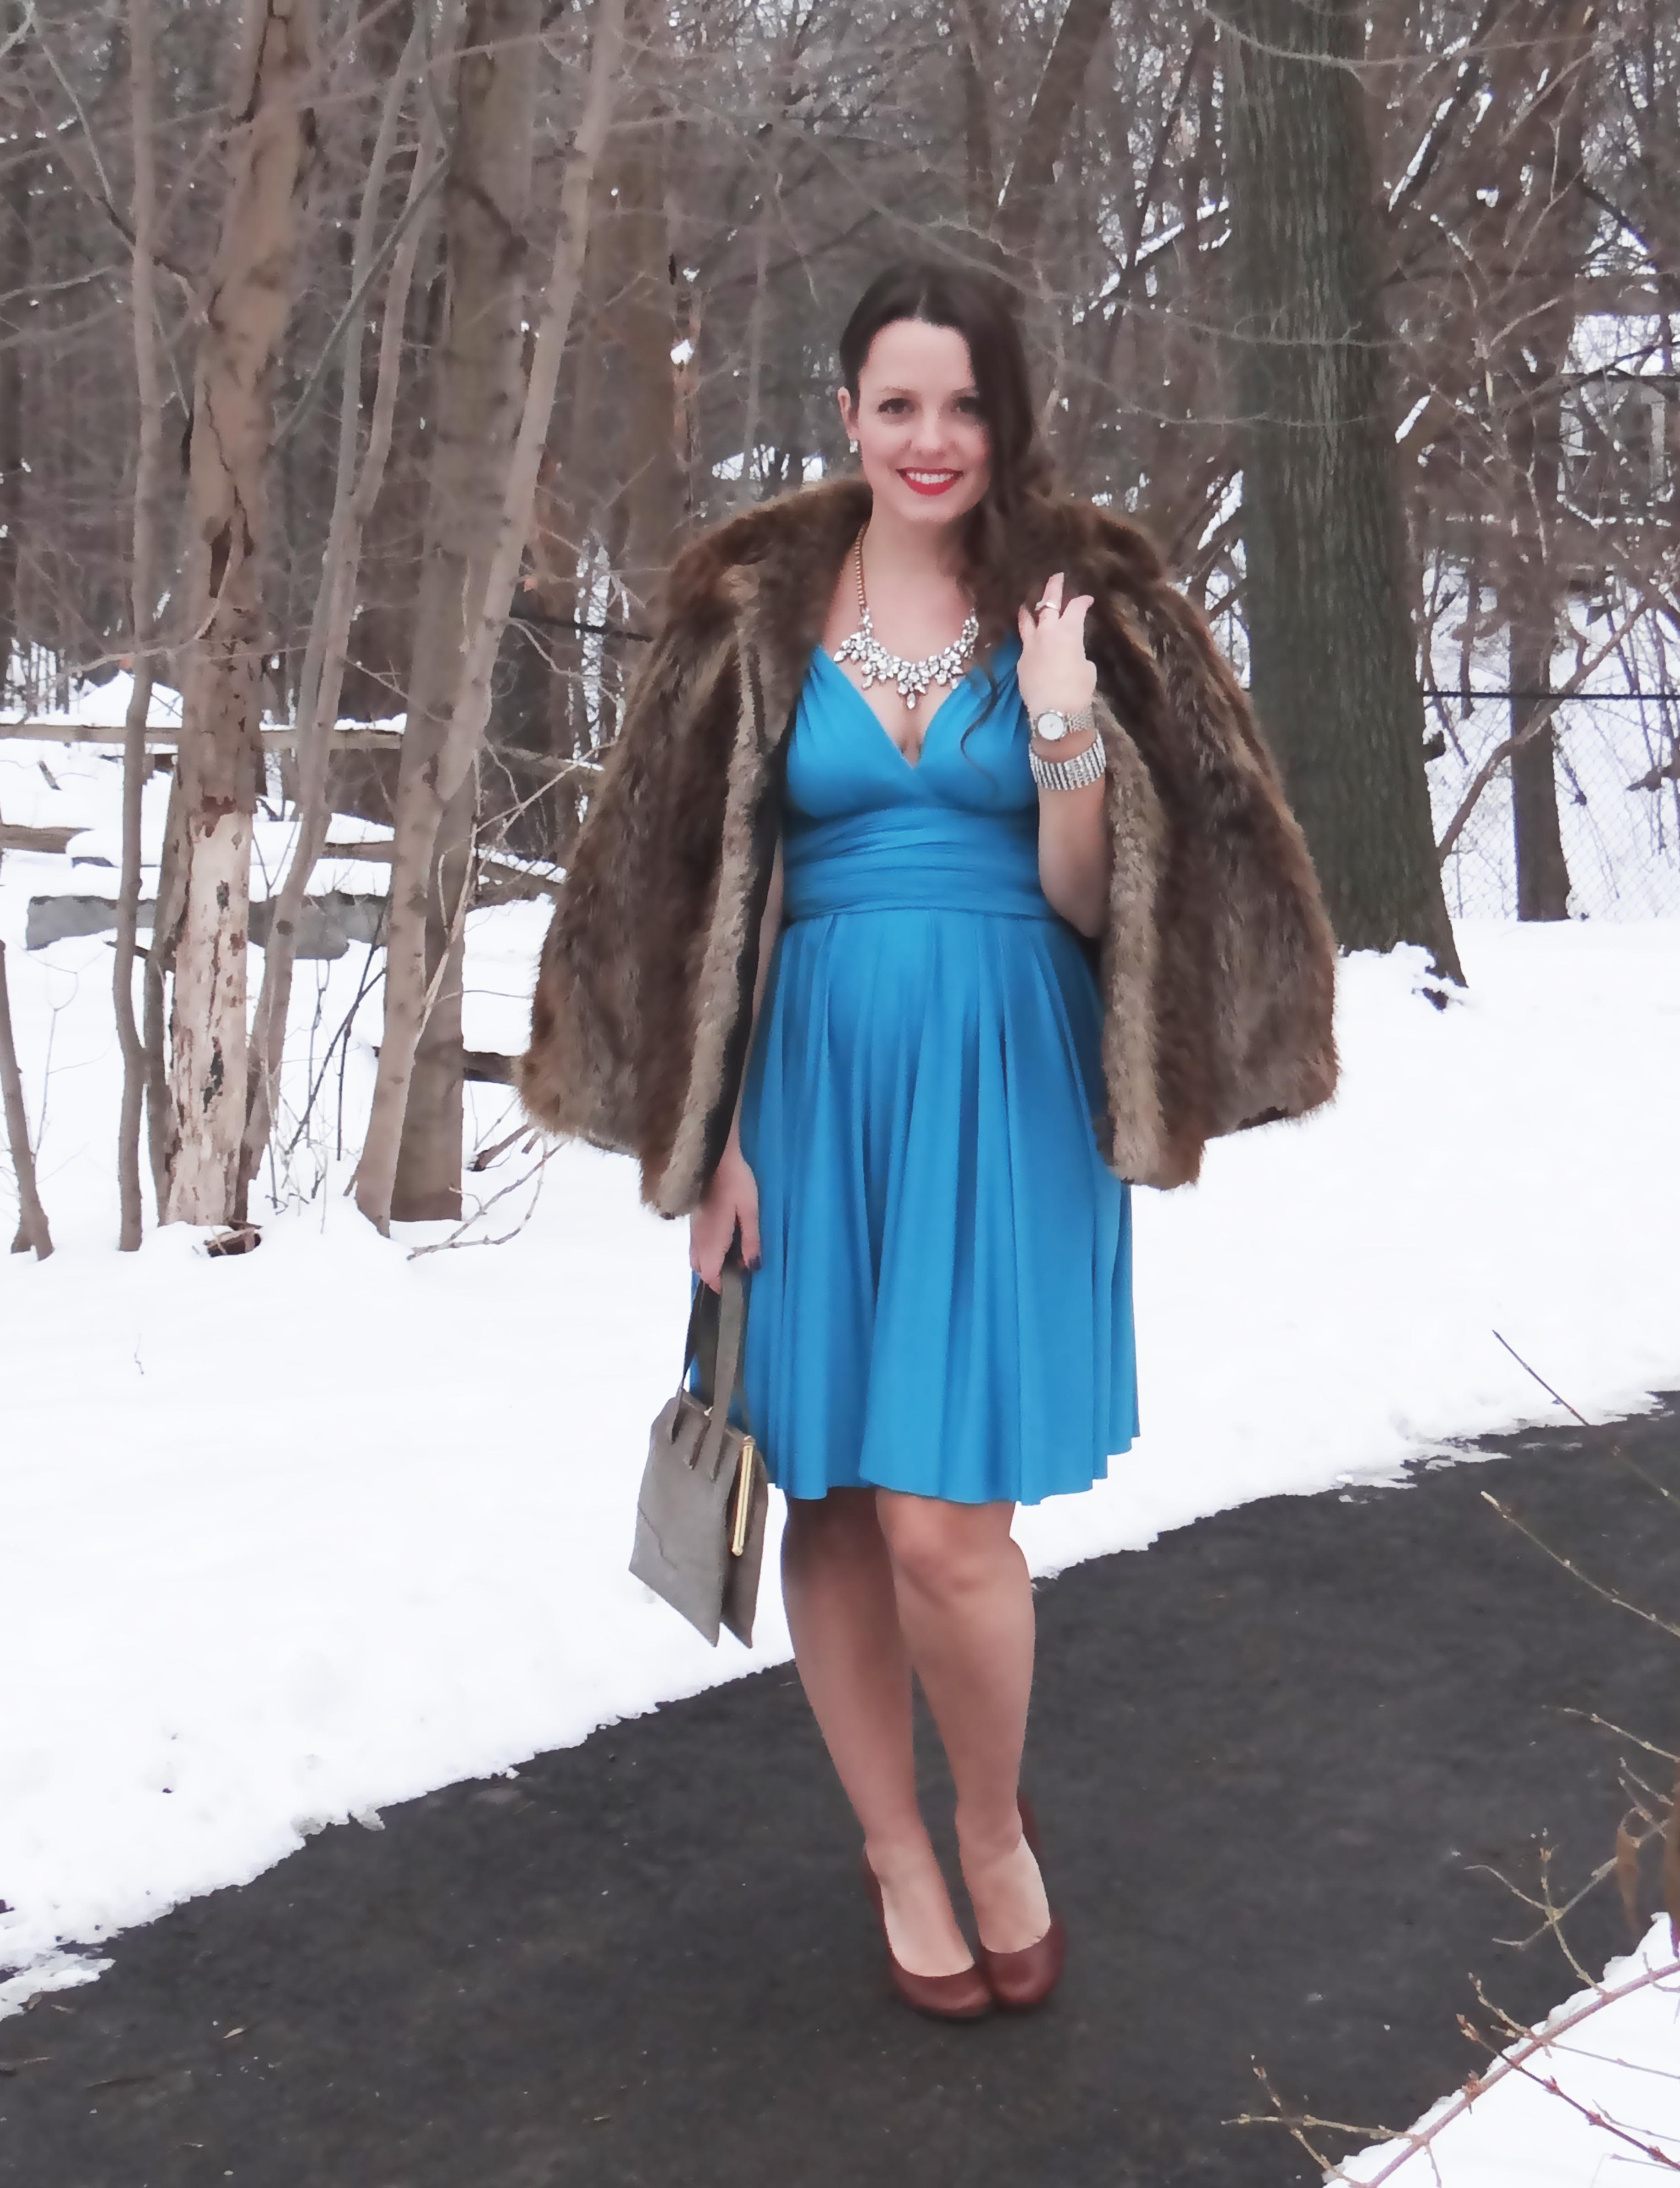 Henkaa Dress, Vintage, Hollywood Glamour, Winter Fashion, life and style, fashion blog, fashion, style, outfit, fashion blogger, style blogger, outfit ideas, fashion styles, Victoria Simpson, A Side of Vogue